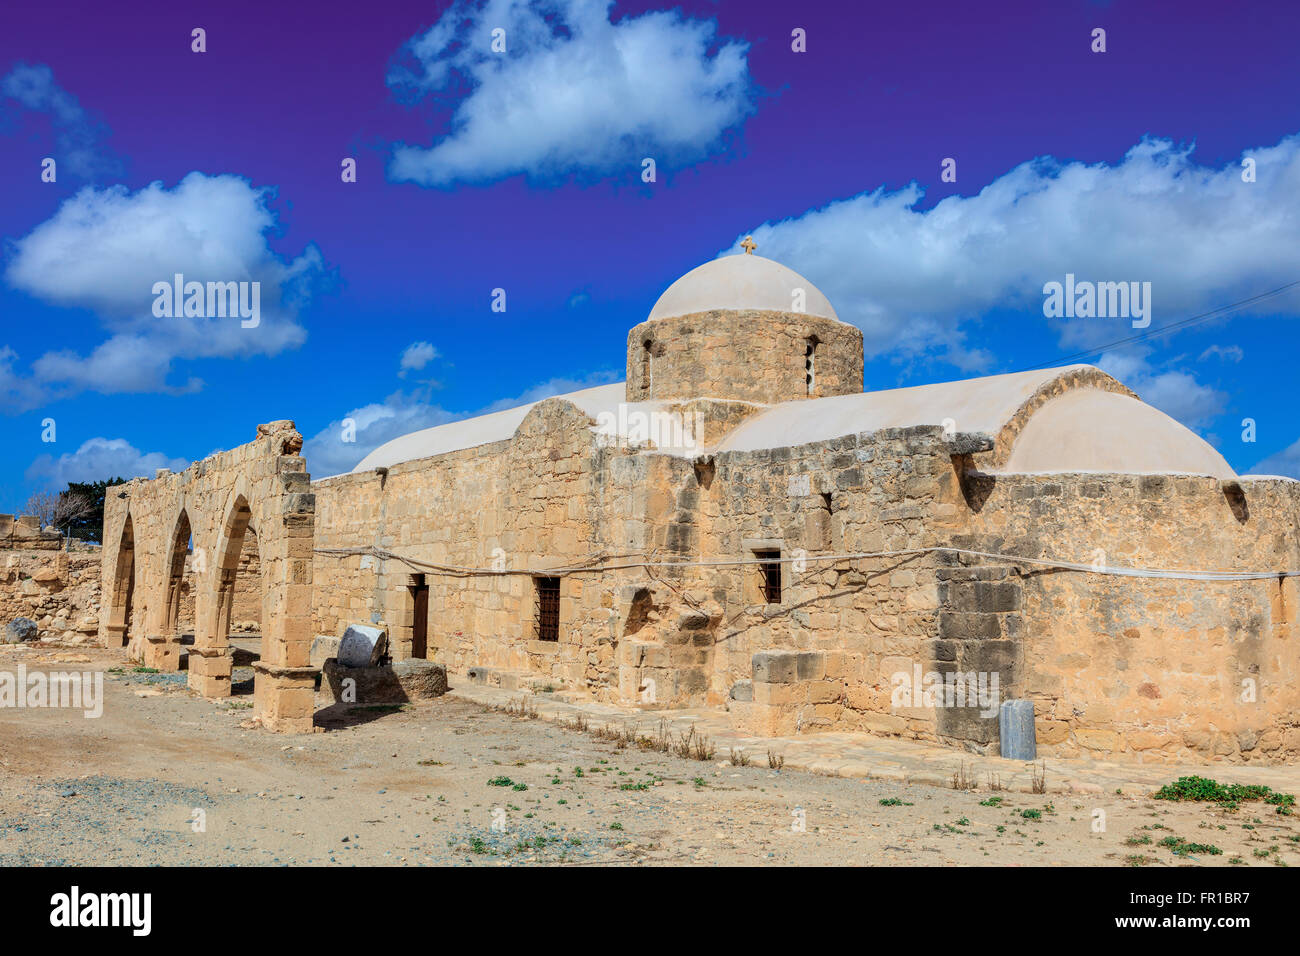 Ancient church of 'Panagia Odigitria' (the Guiding Blessed Virgin Mary) in Cyprus. - Stock Image